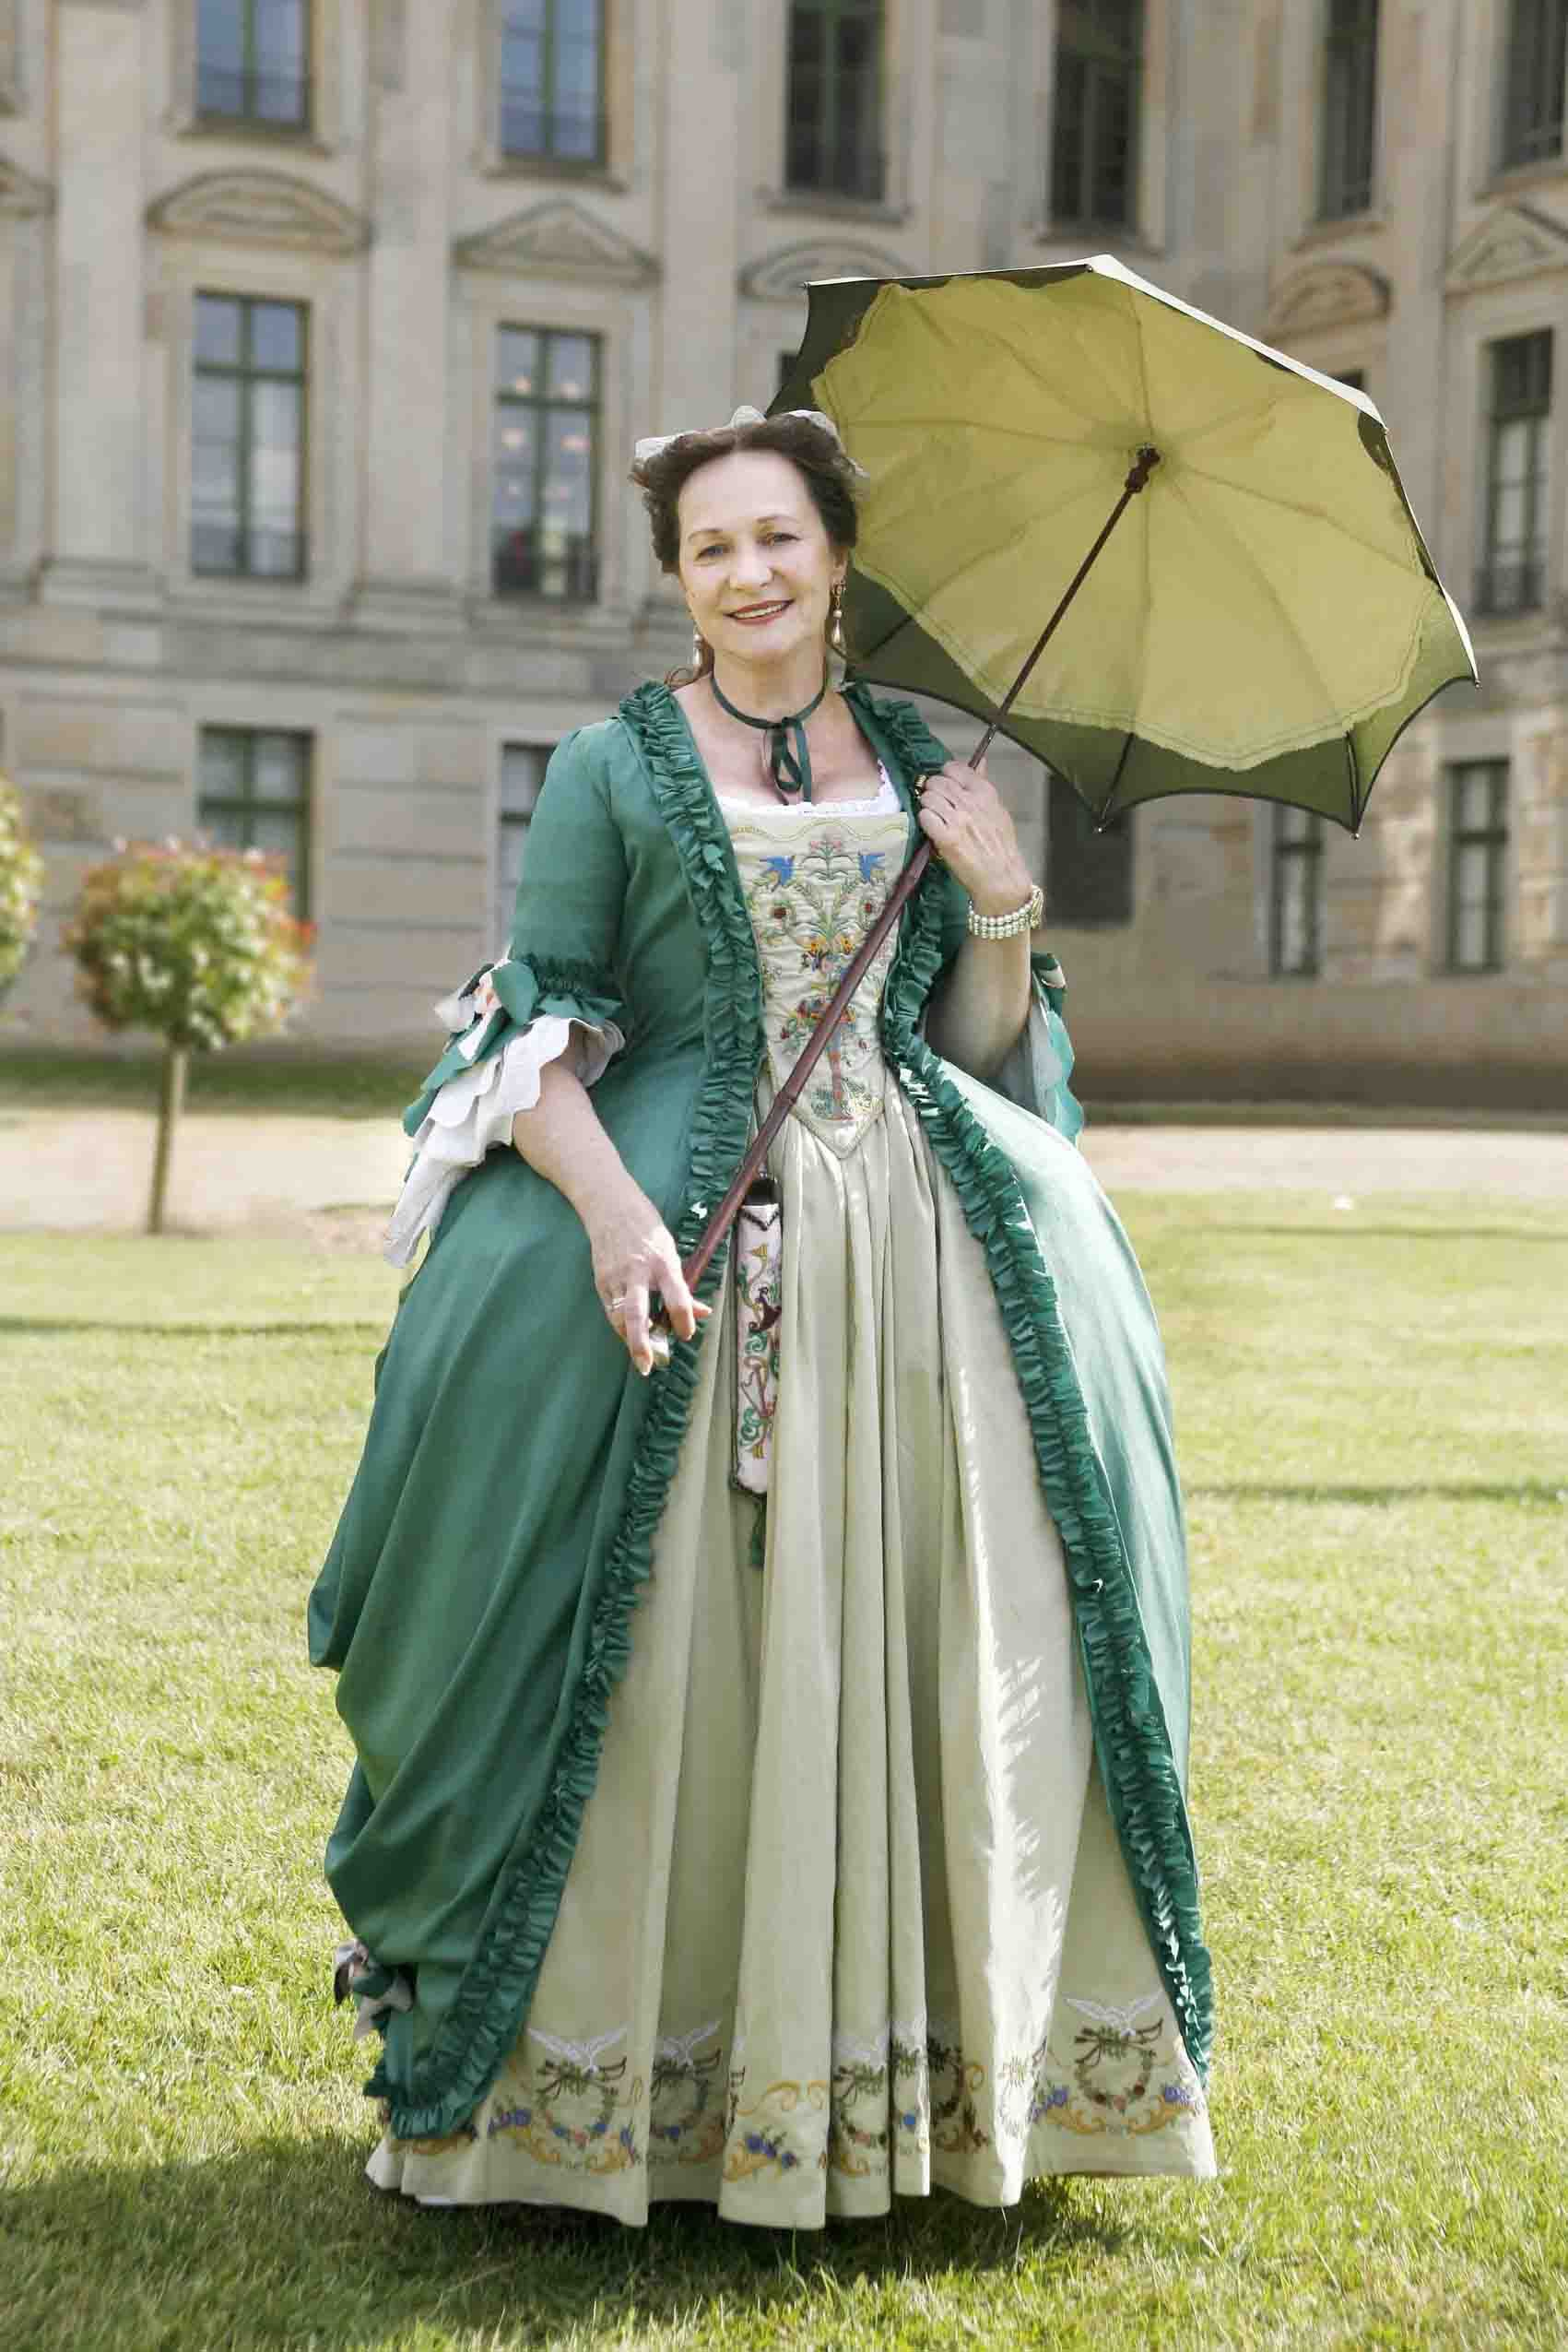 Ludwigslust 05 2008 The Light Green Jupe Has Been Altered With An Embroidered Border And I Have 18th Century Clothing 18th Century Fashion 18th Century Dress